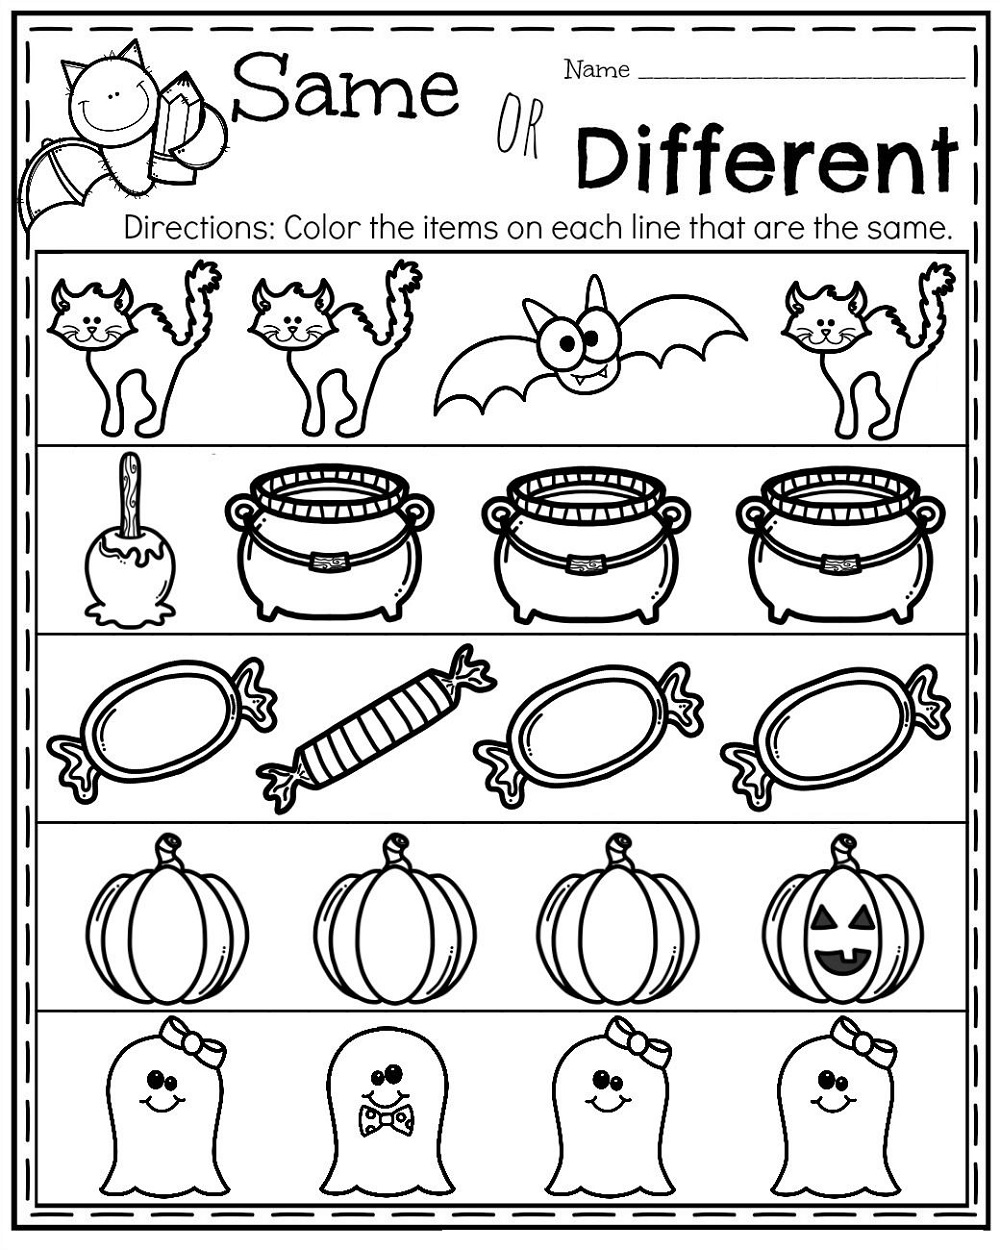 Same Different Worksheets Halloween